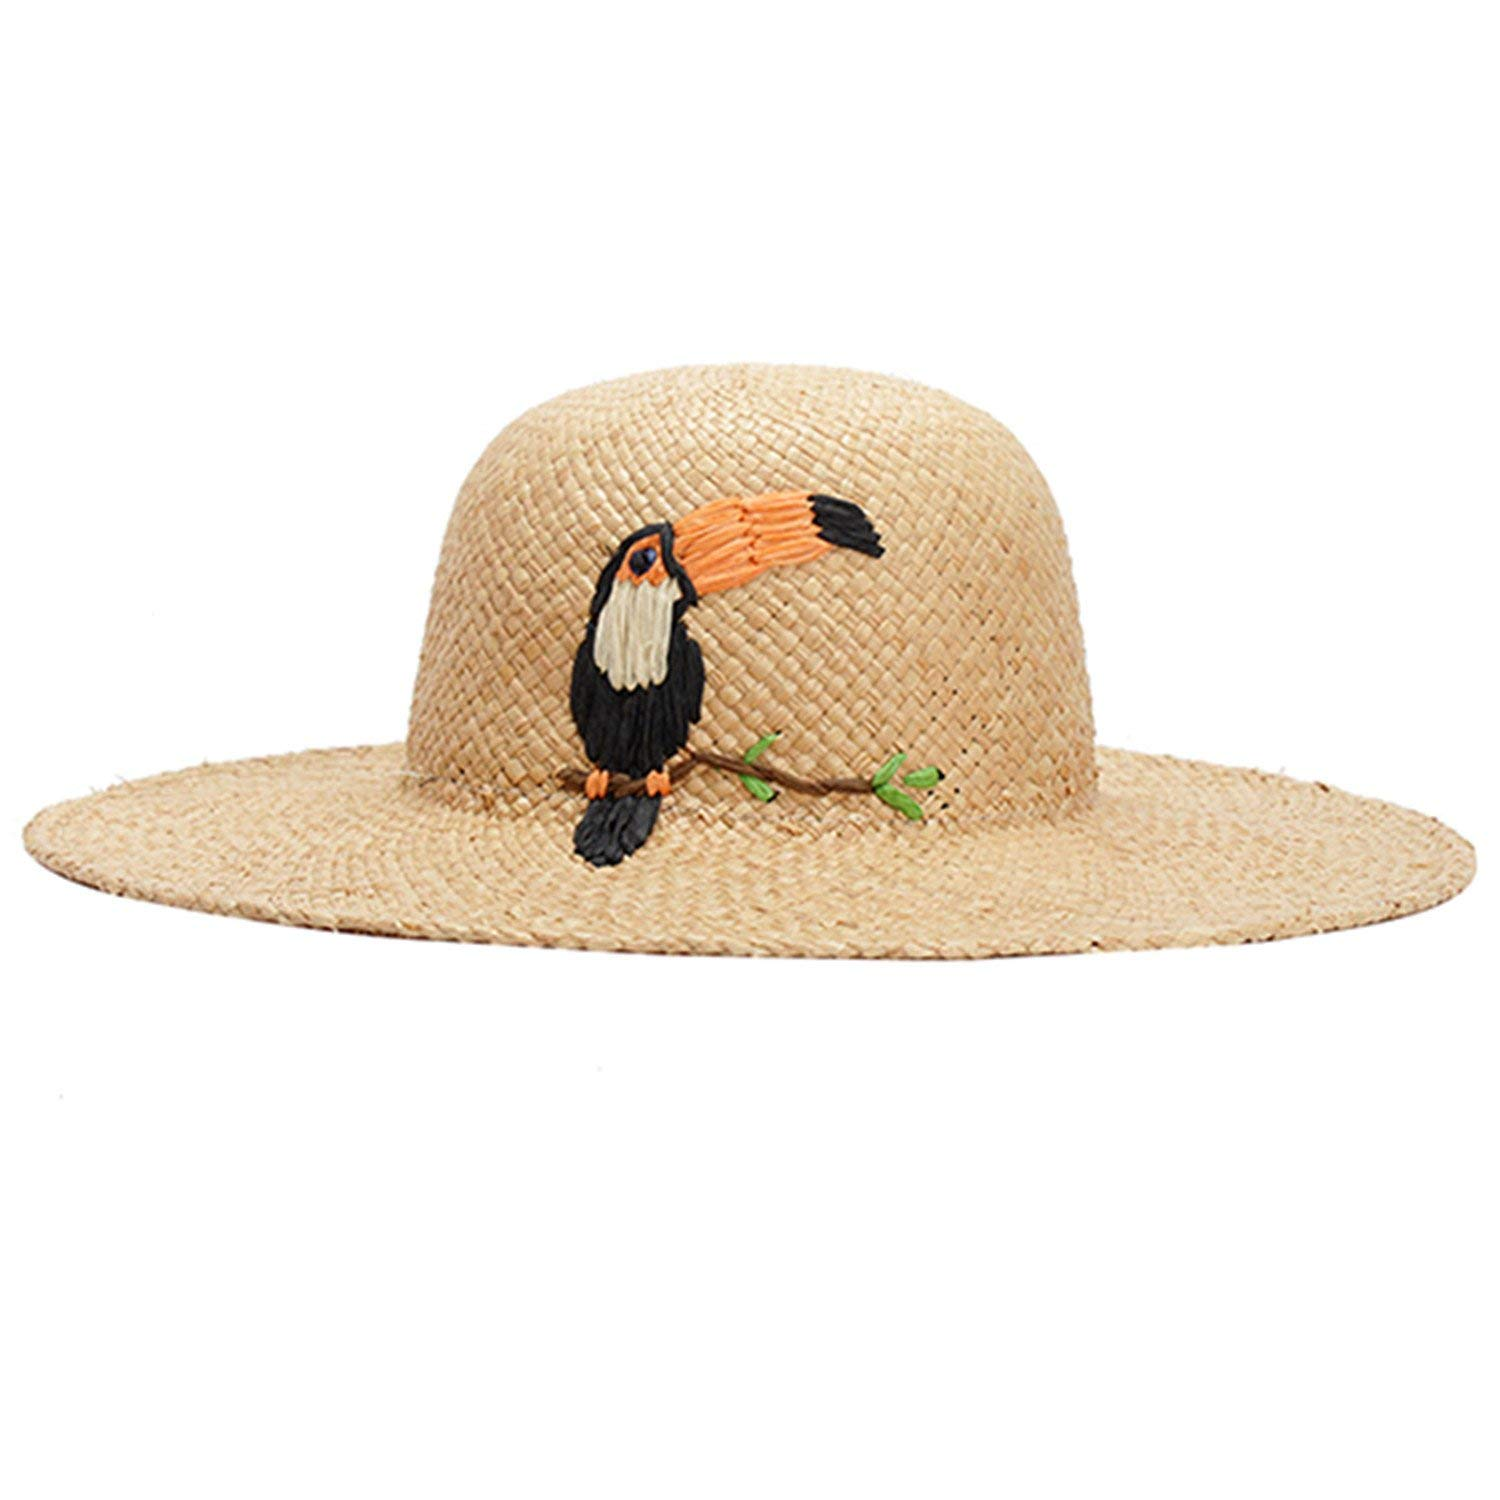 16afe208194d5 Get Quotations · Stephanie Fashion Lady Raffia Straw Hats Embroidery Crow  Animal Pattern Summer Sun Hat for Women Travel